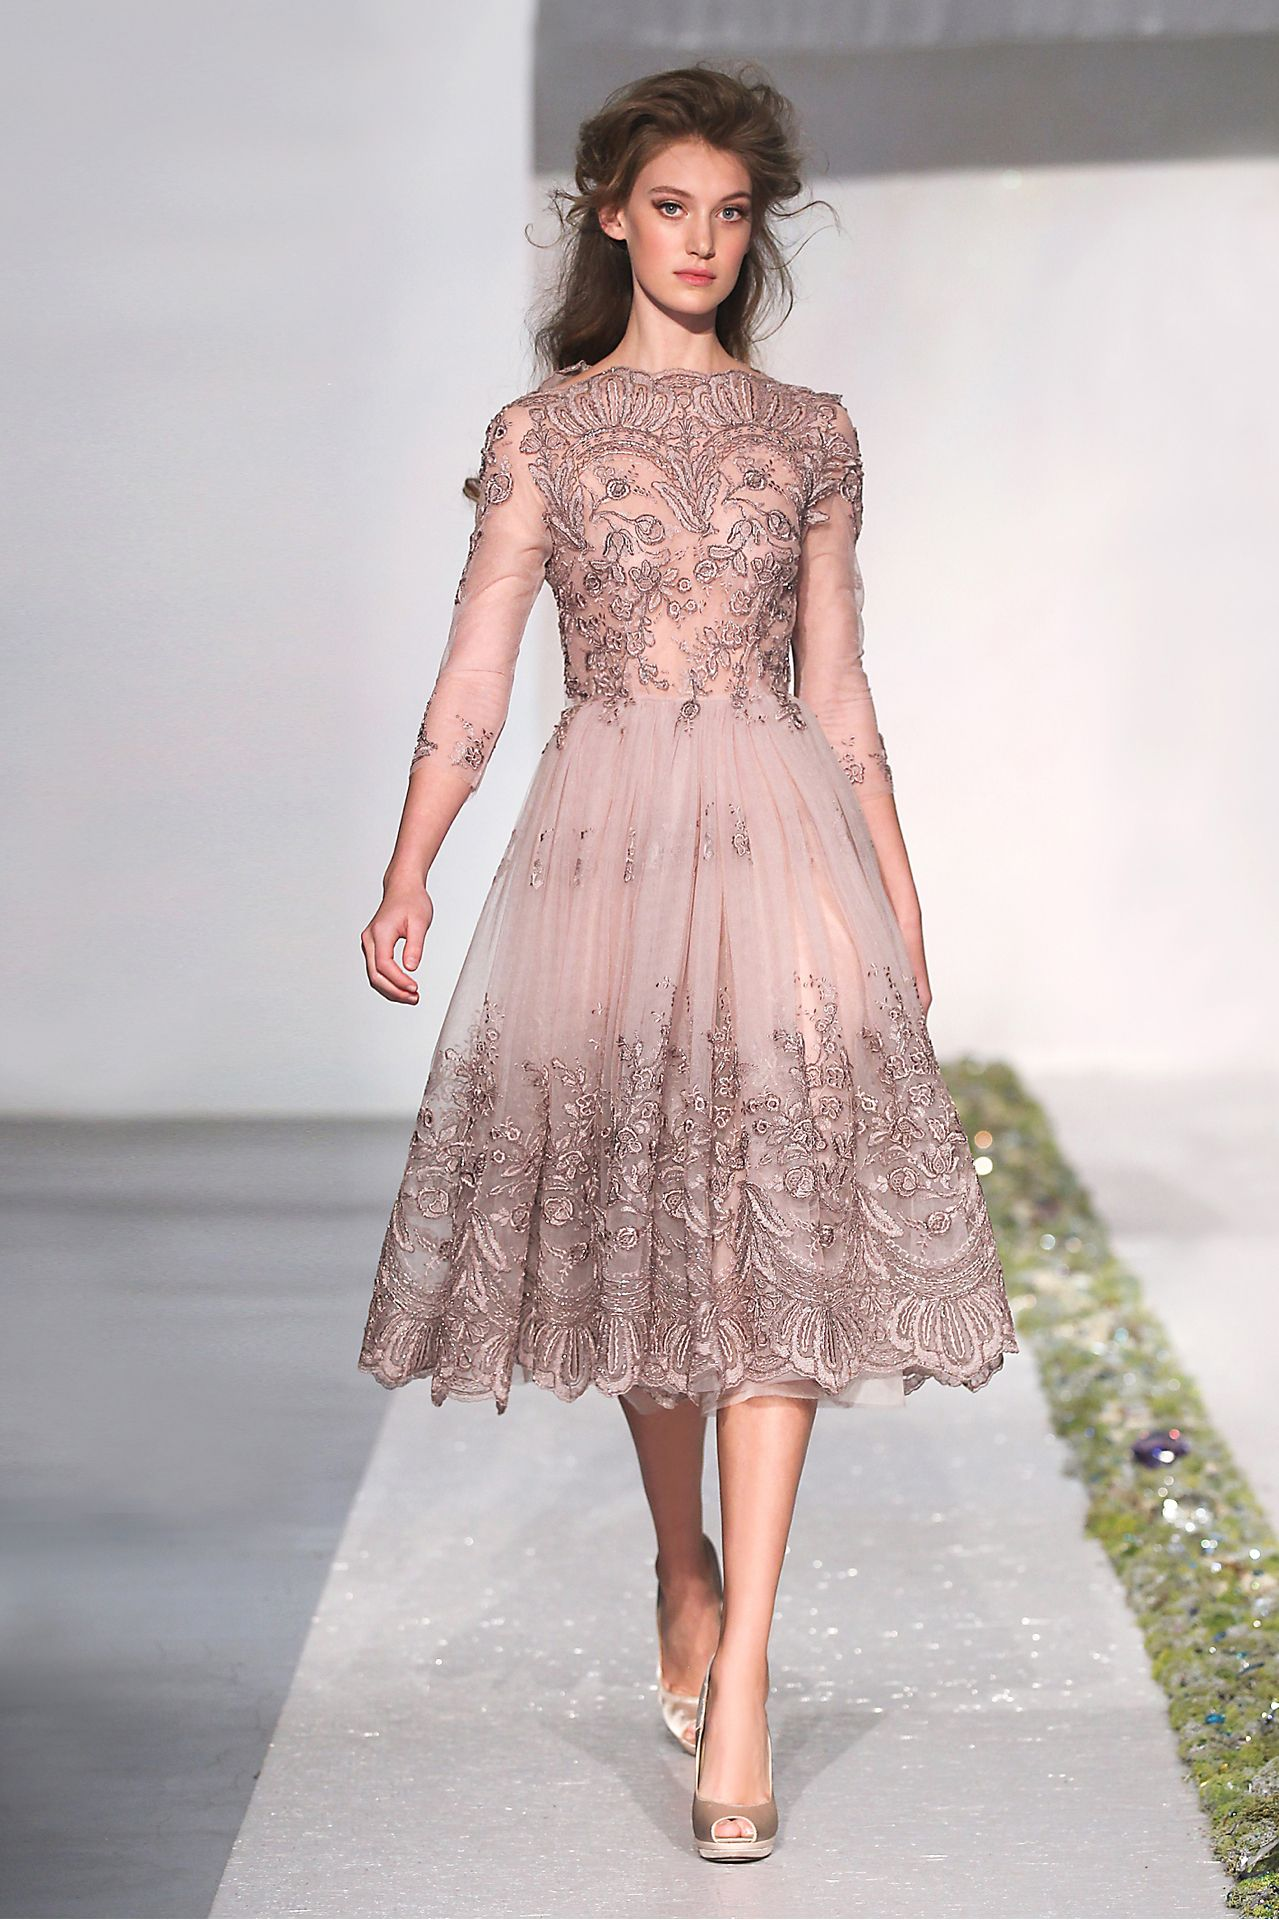 luisa beccaria   Faboulous Dresses & others   Pinterest